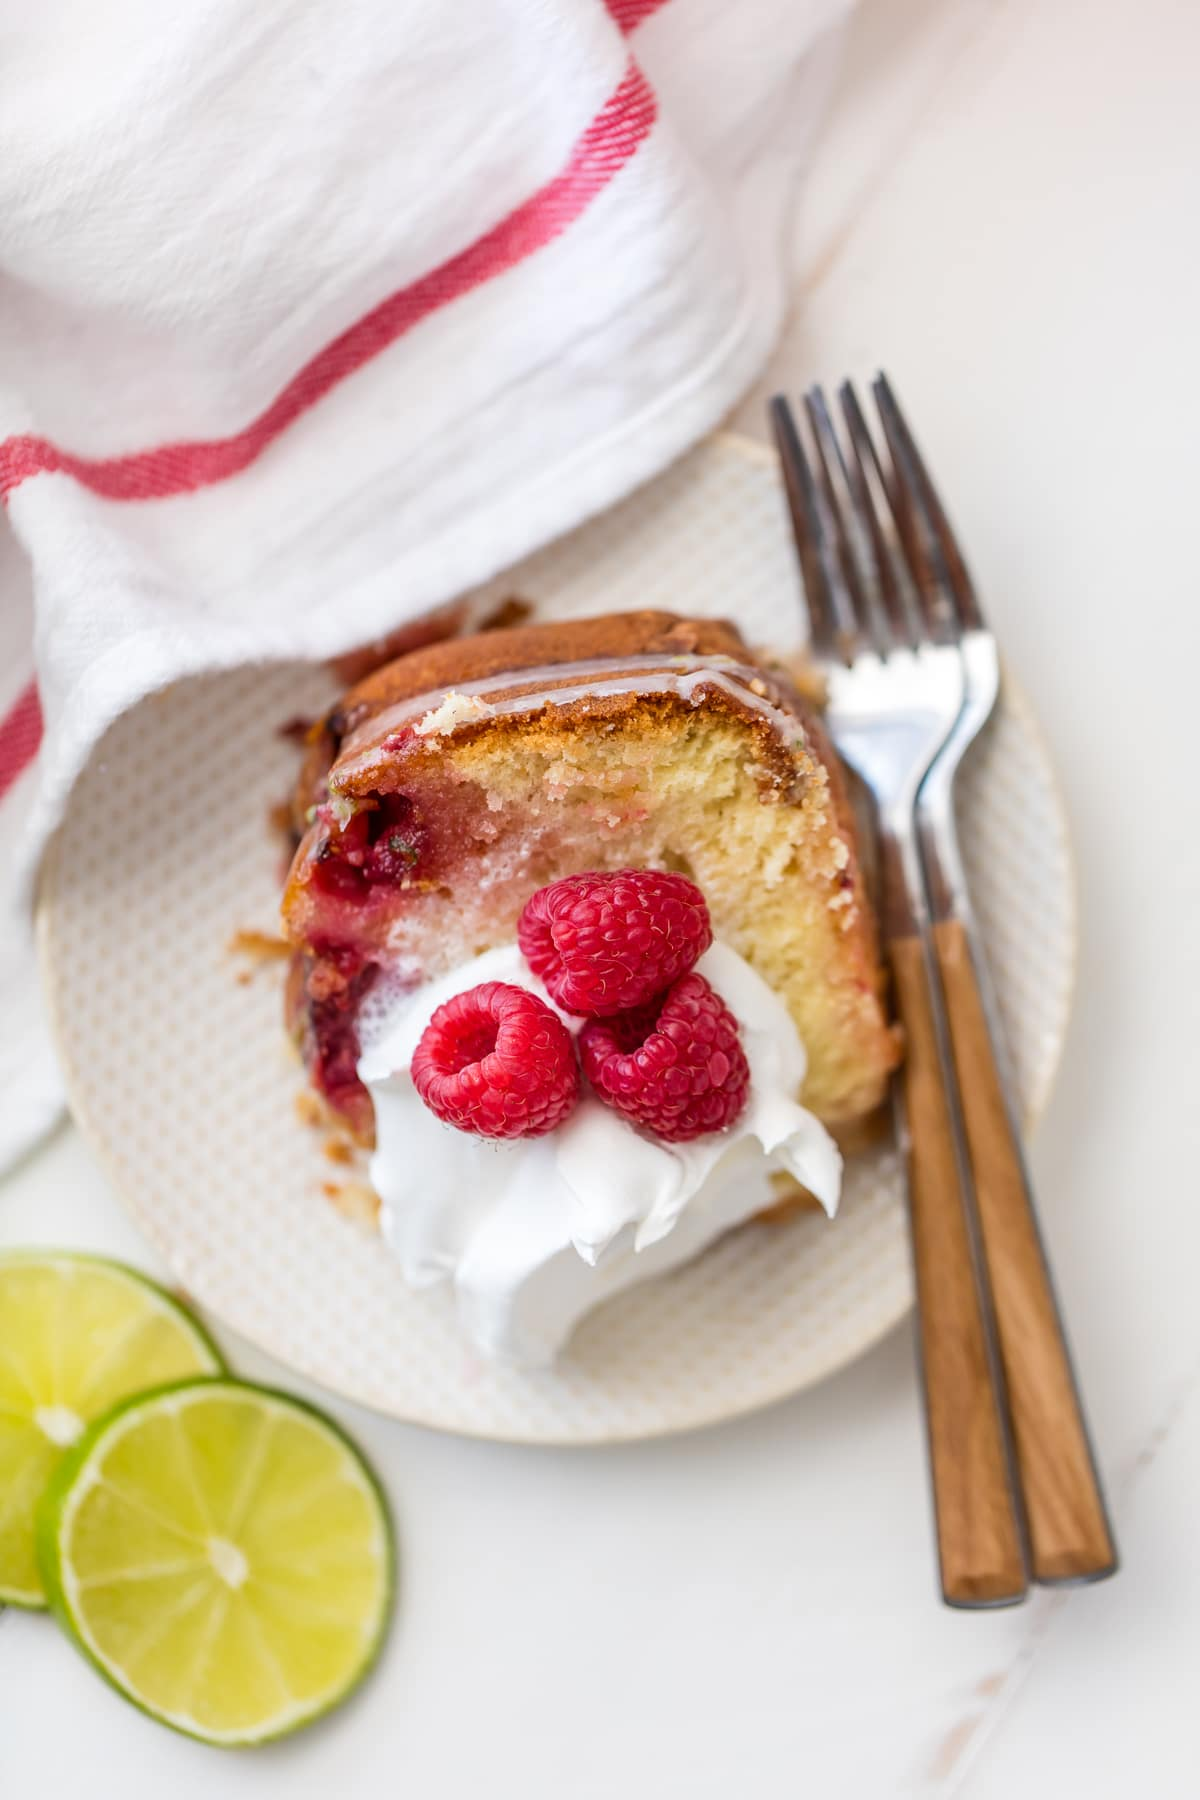 A slice of raspberry cake topped with cream and raspberries, on a white plate with two forks